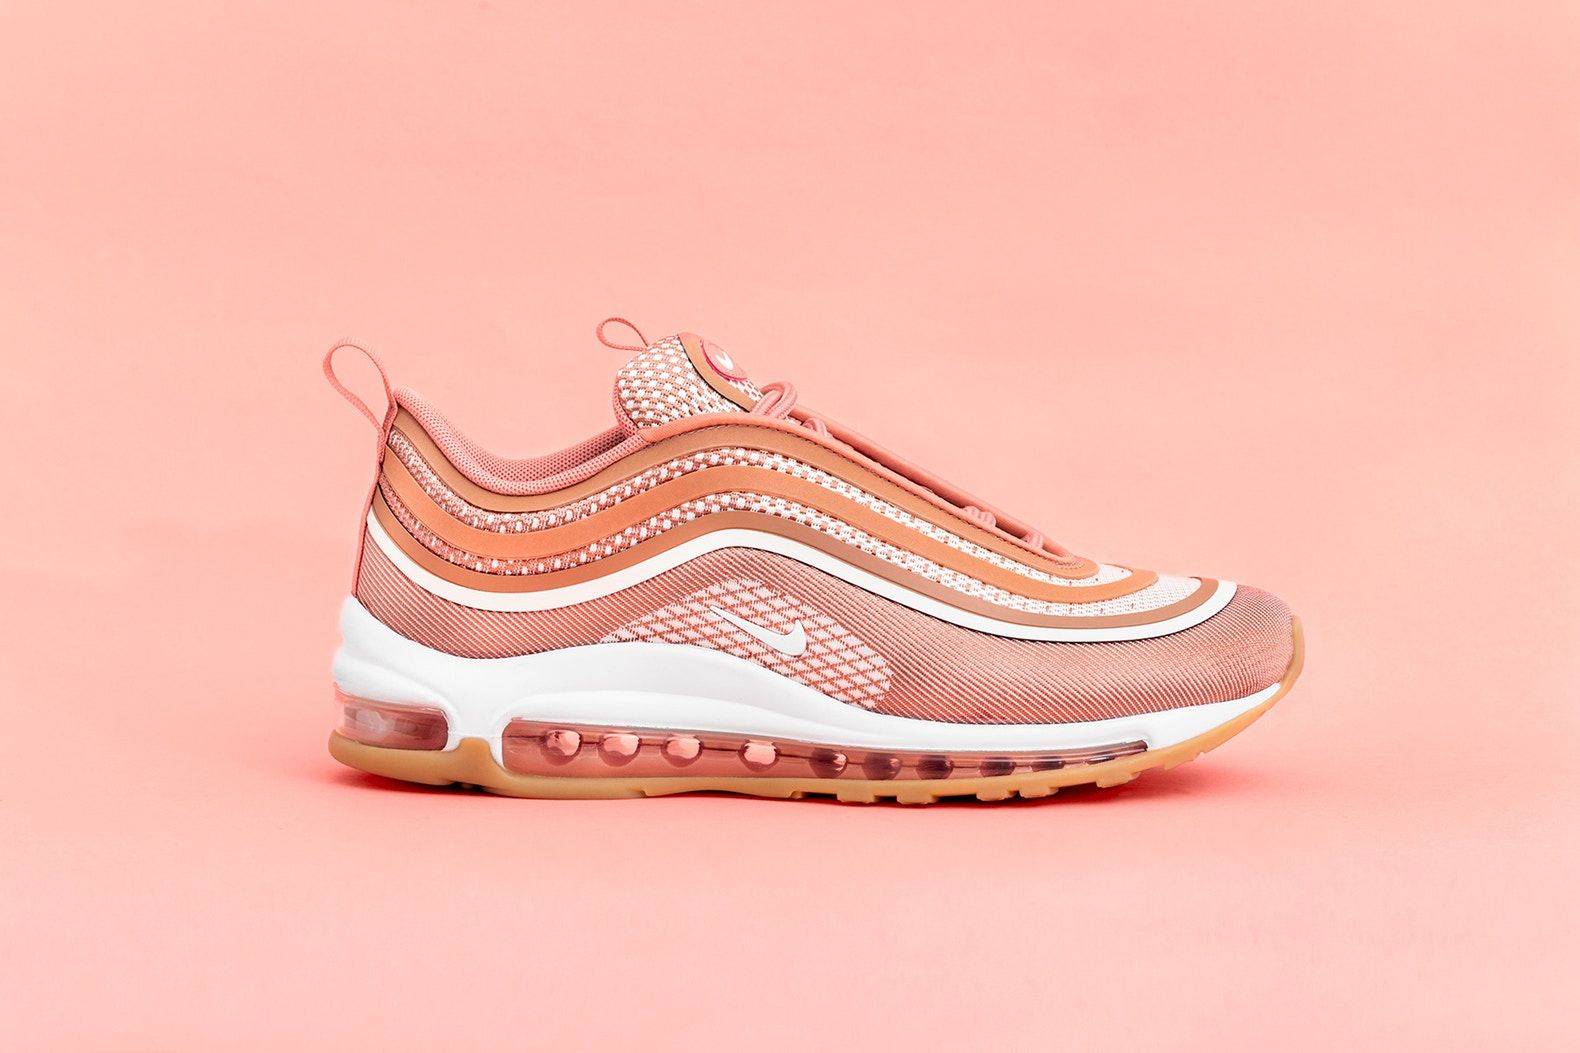 sale retailer 18283 71812 nike air max 97 ultra metallic rose gold, athleisure, casual outfit